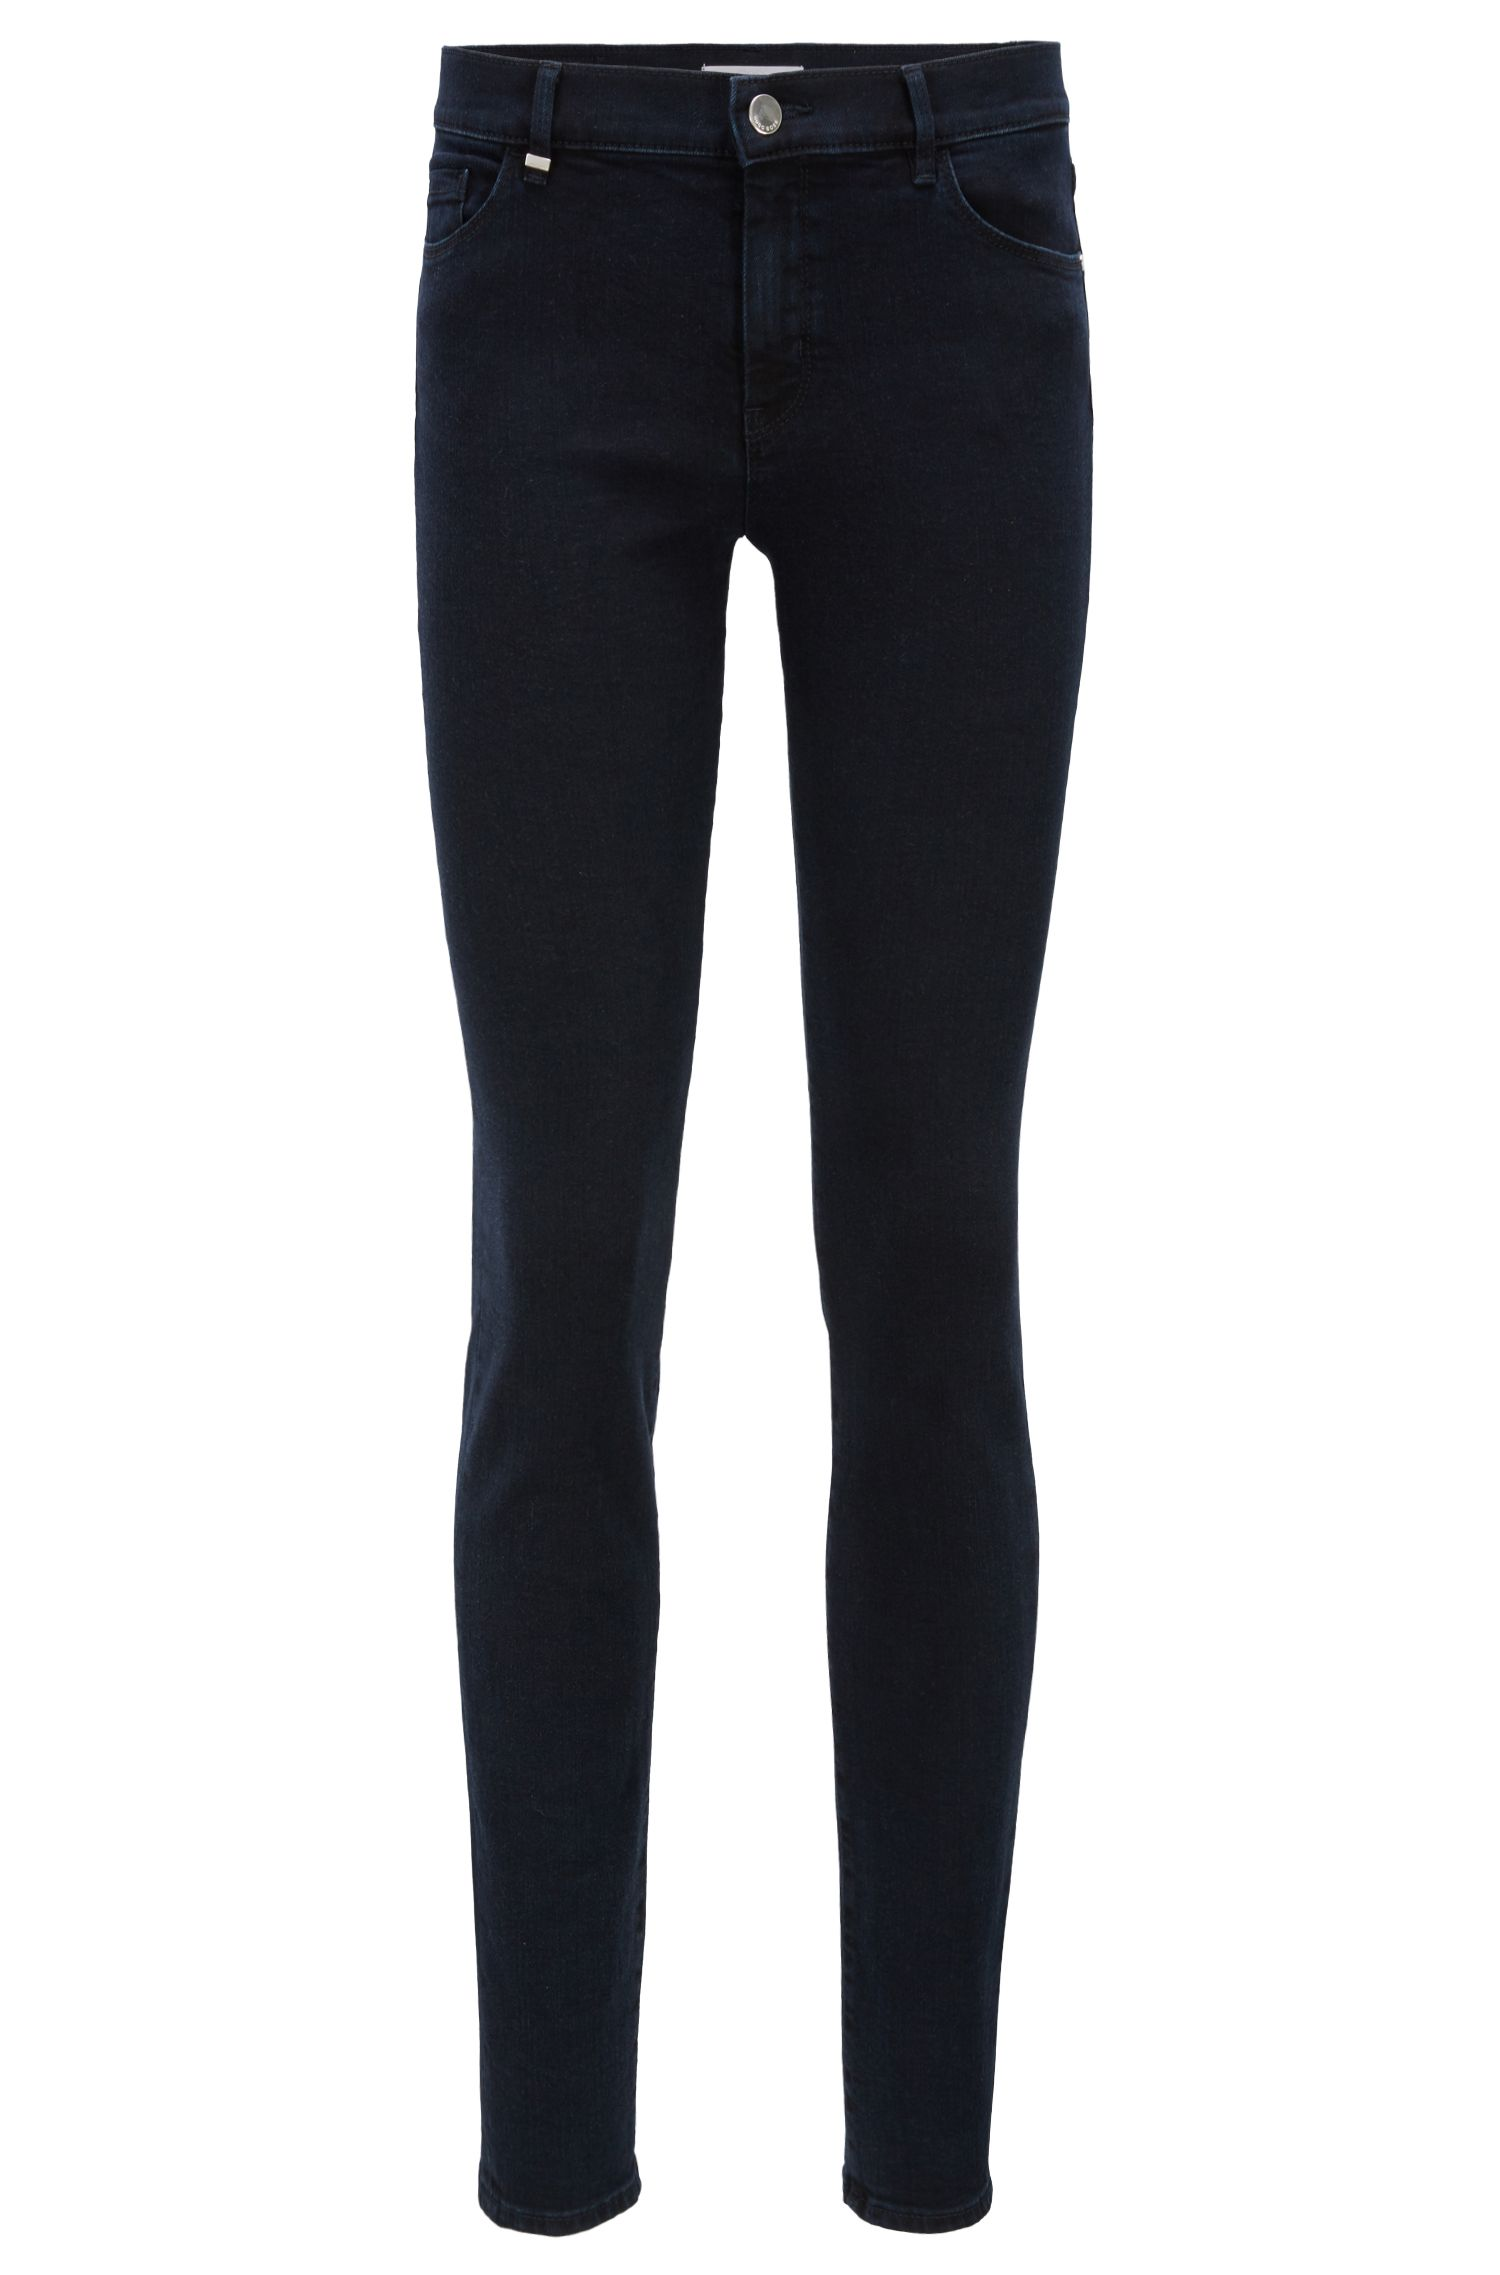 Slim-fit jeans van blauwzwart superstretchdenim